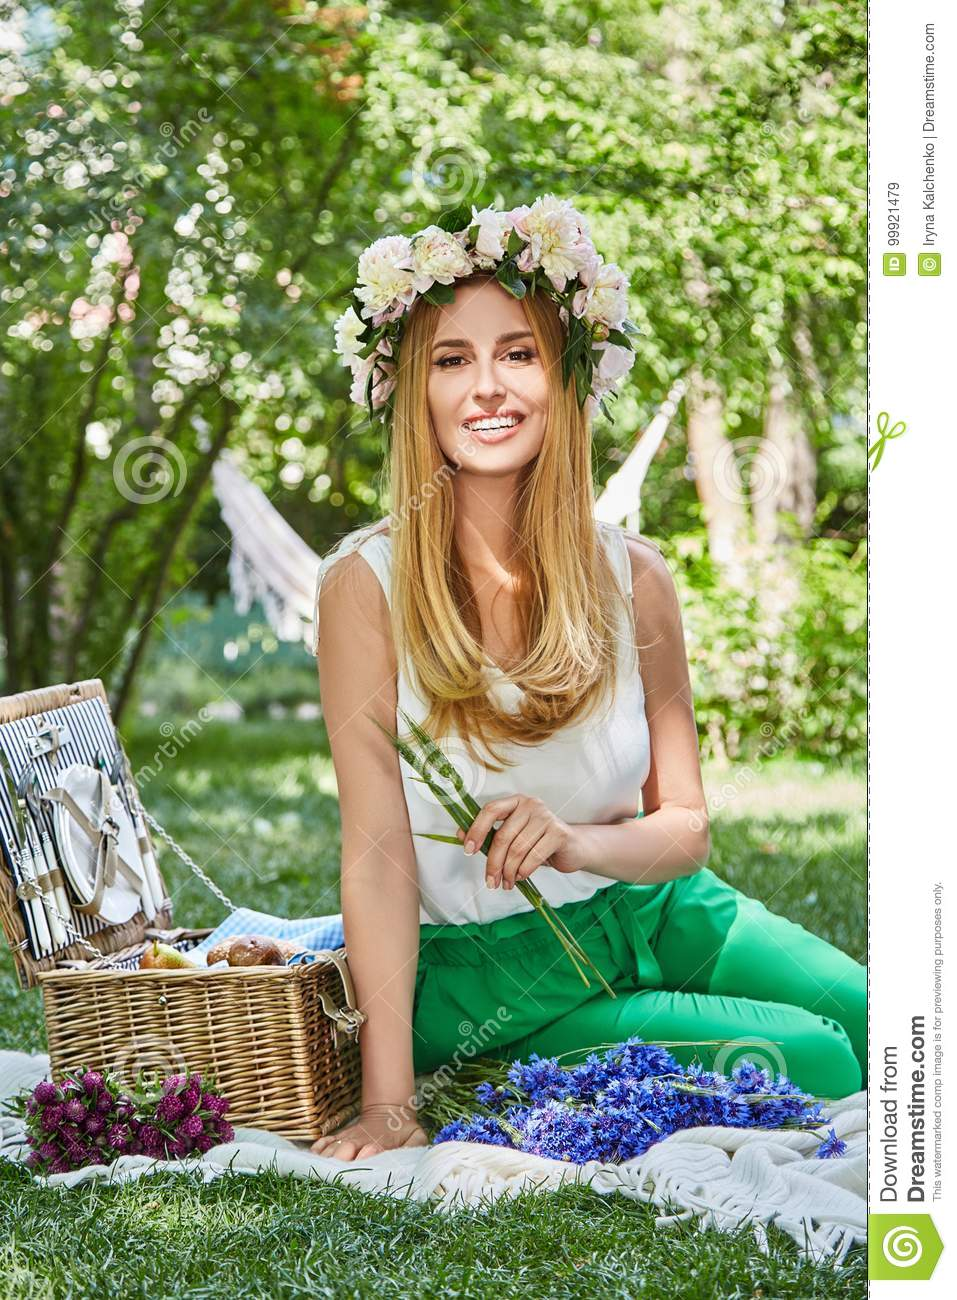 Sexy photos of woman on picnic